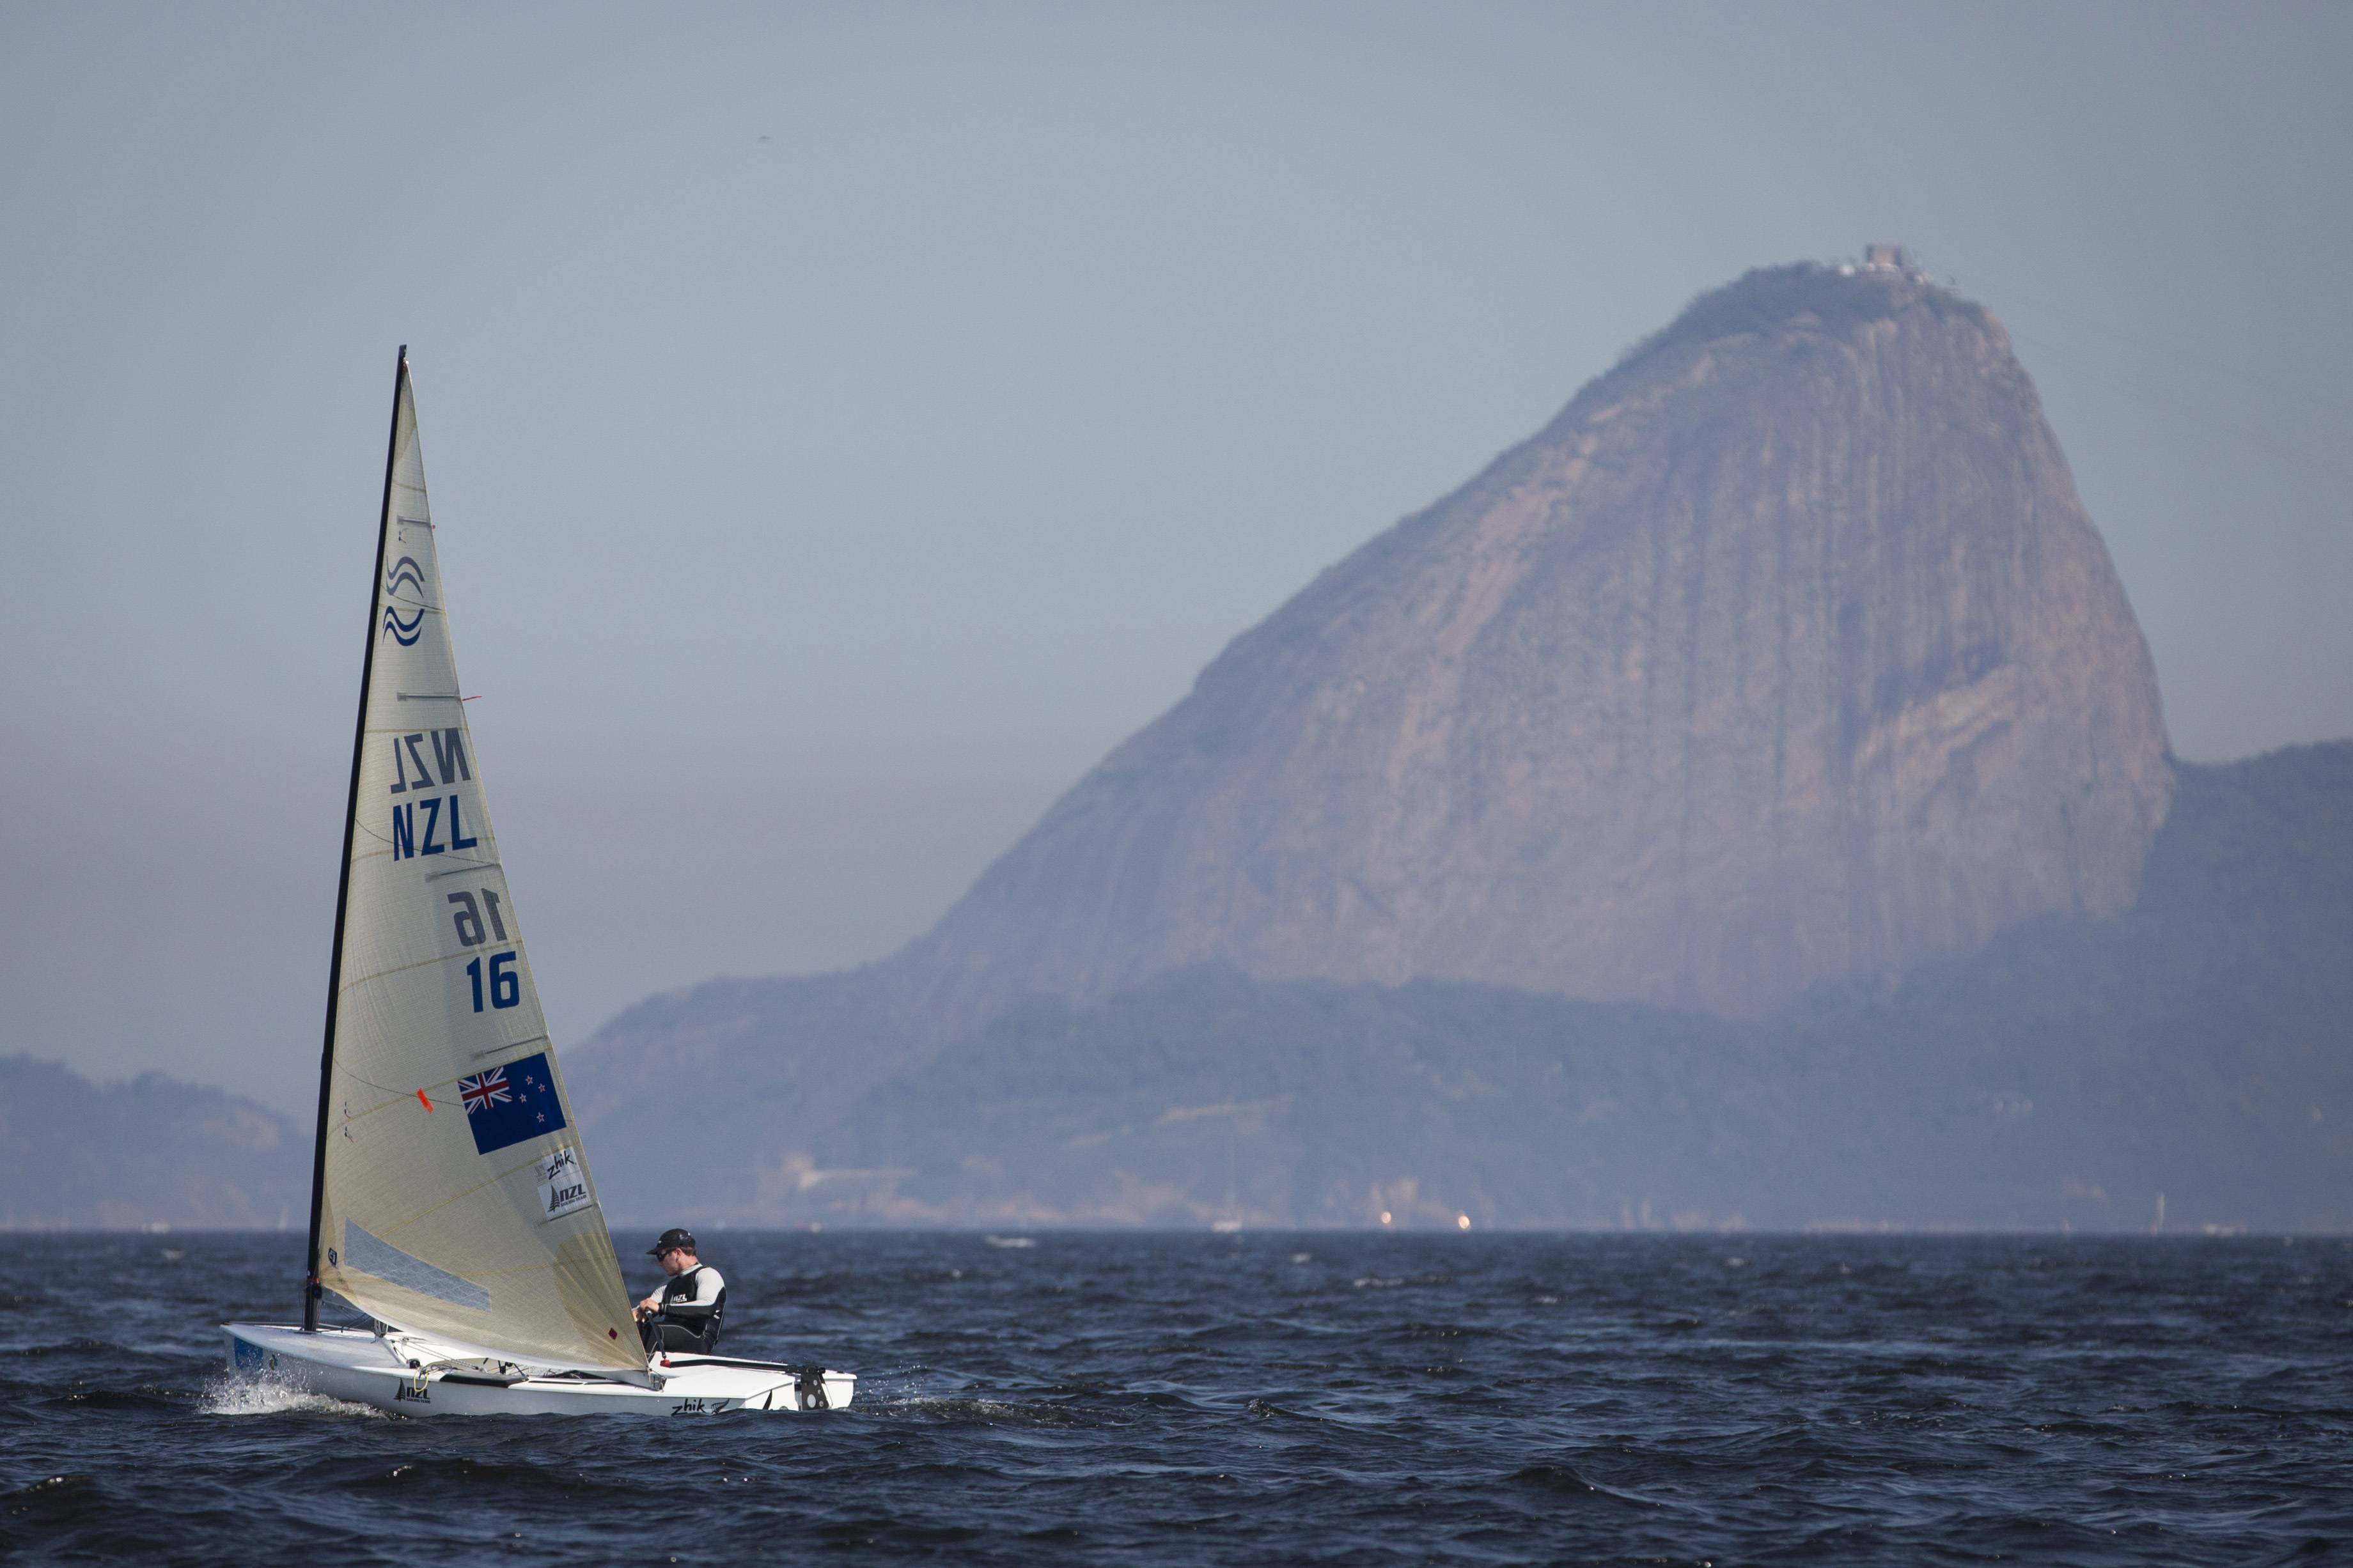 New Zealand's Finn class Andrew Murdoch competes during the first test event for the Rio 2016 Olympic Games at the Guanabara Bay in Rio de Janeiro, Sunday, Aug. 3, 2014. Sugar Loaf Mountain is seen on the background. American sailing officials have hired medical experts to test the water in Guanabara, which has suffered from decades of untreated human waste being poured into the bay.